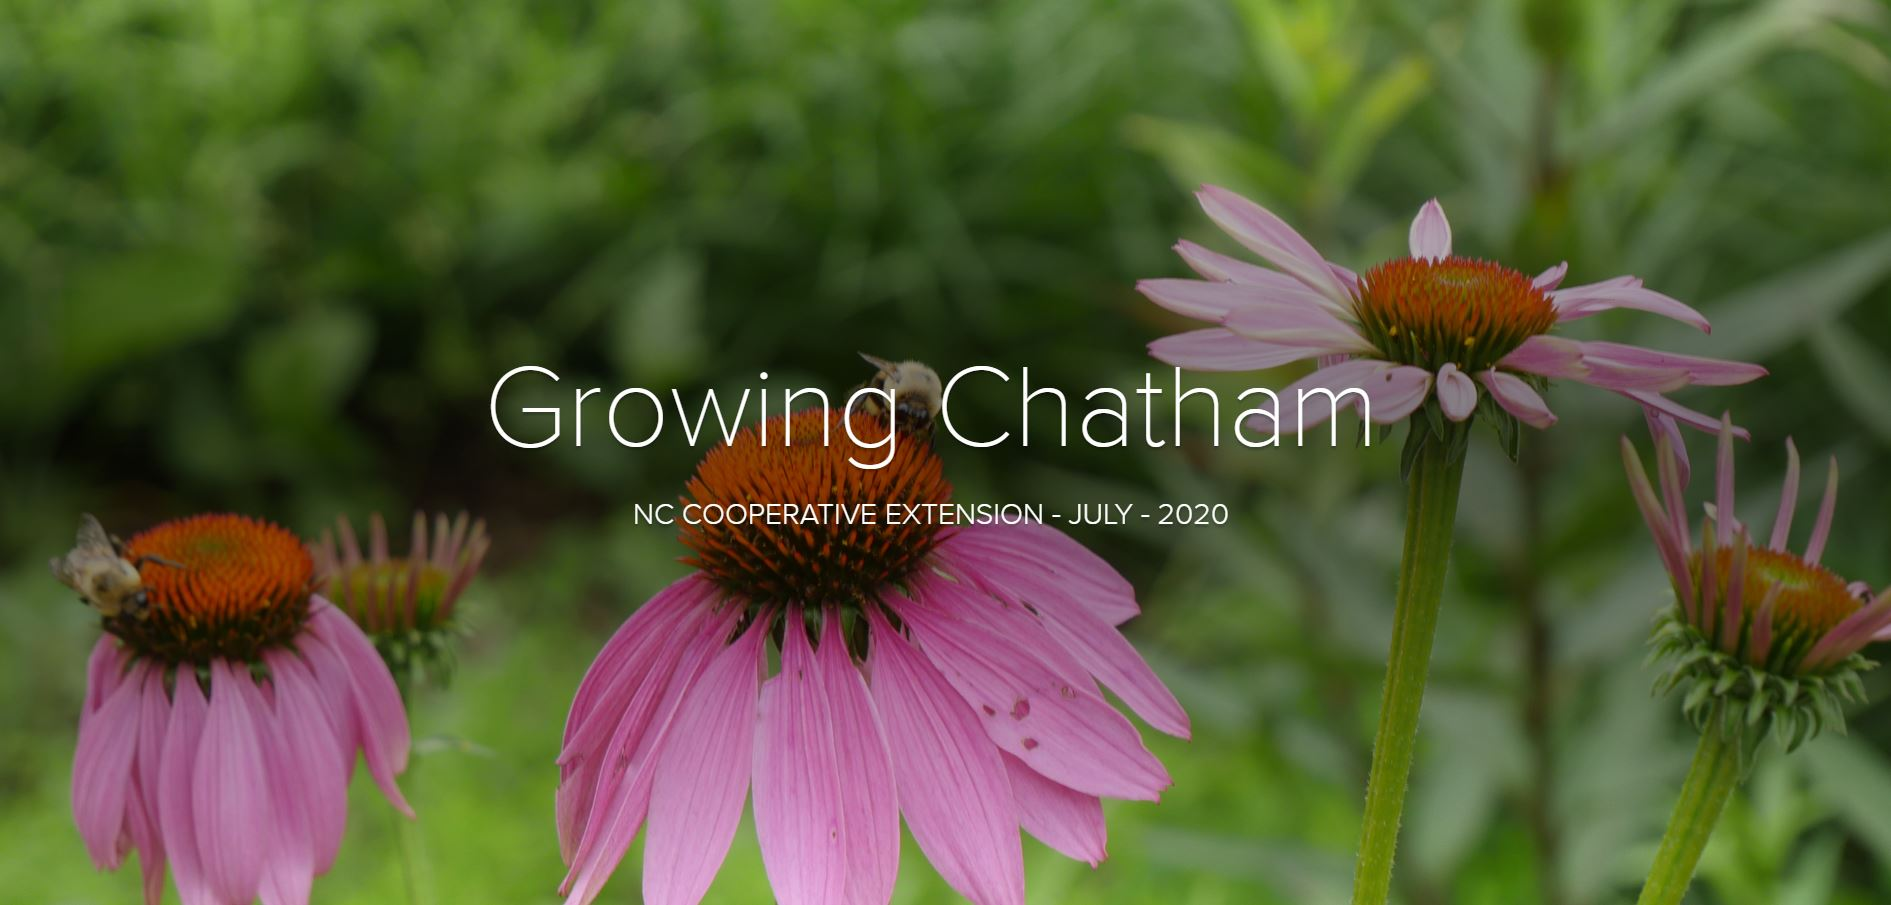 Growing Chatham